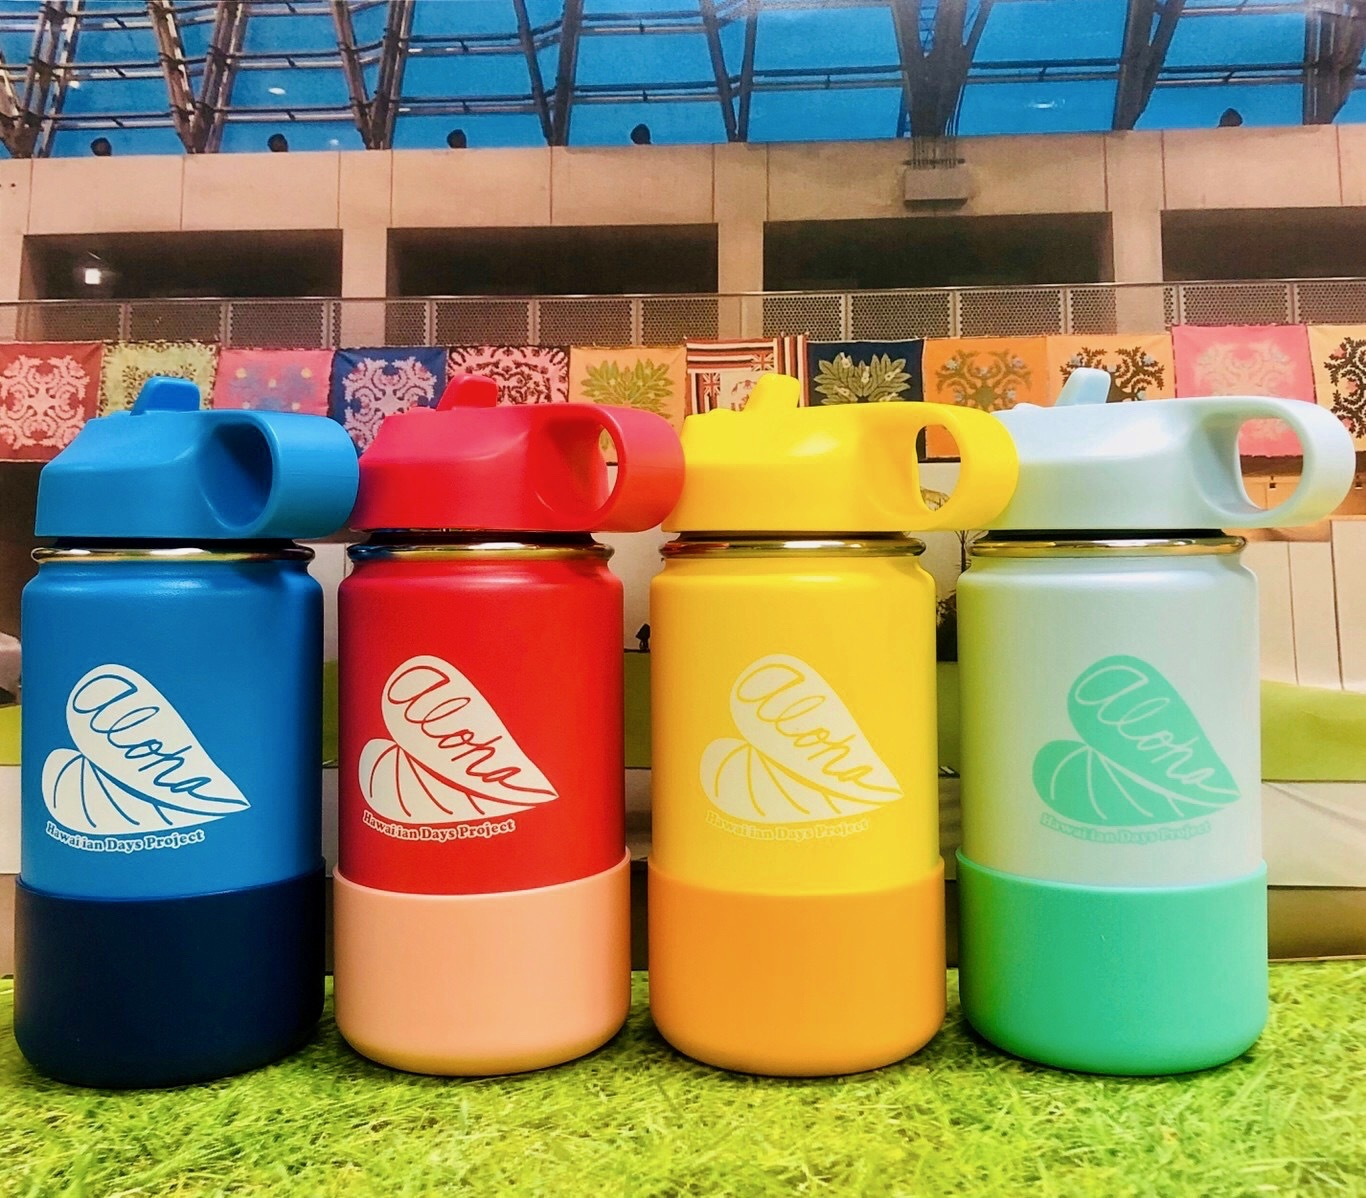 Hydro Flask  Hawaiian Days Project 2020限定モデル発売中